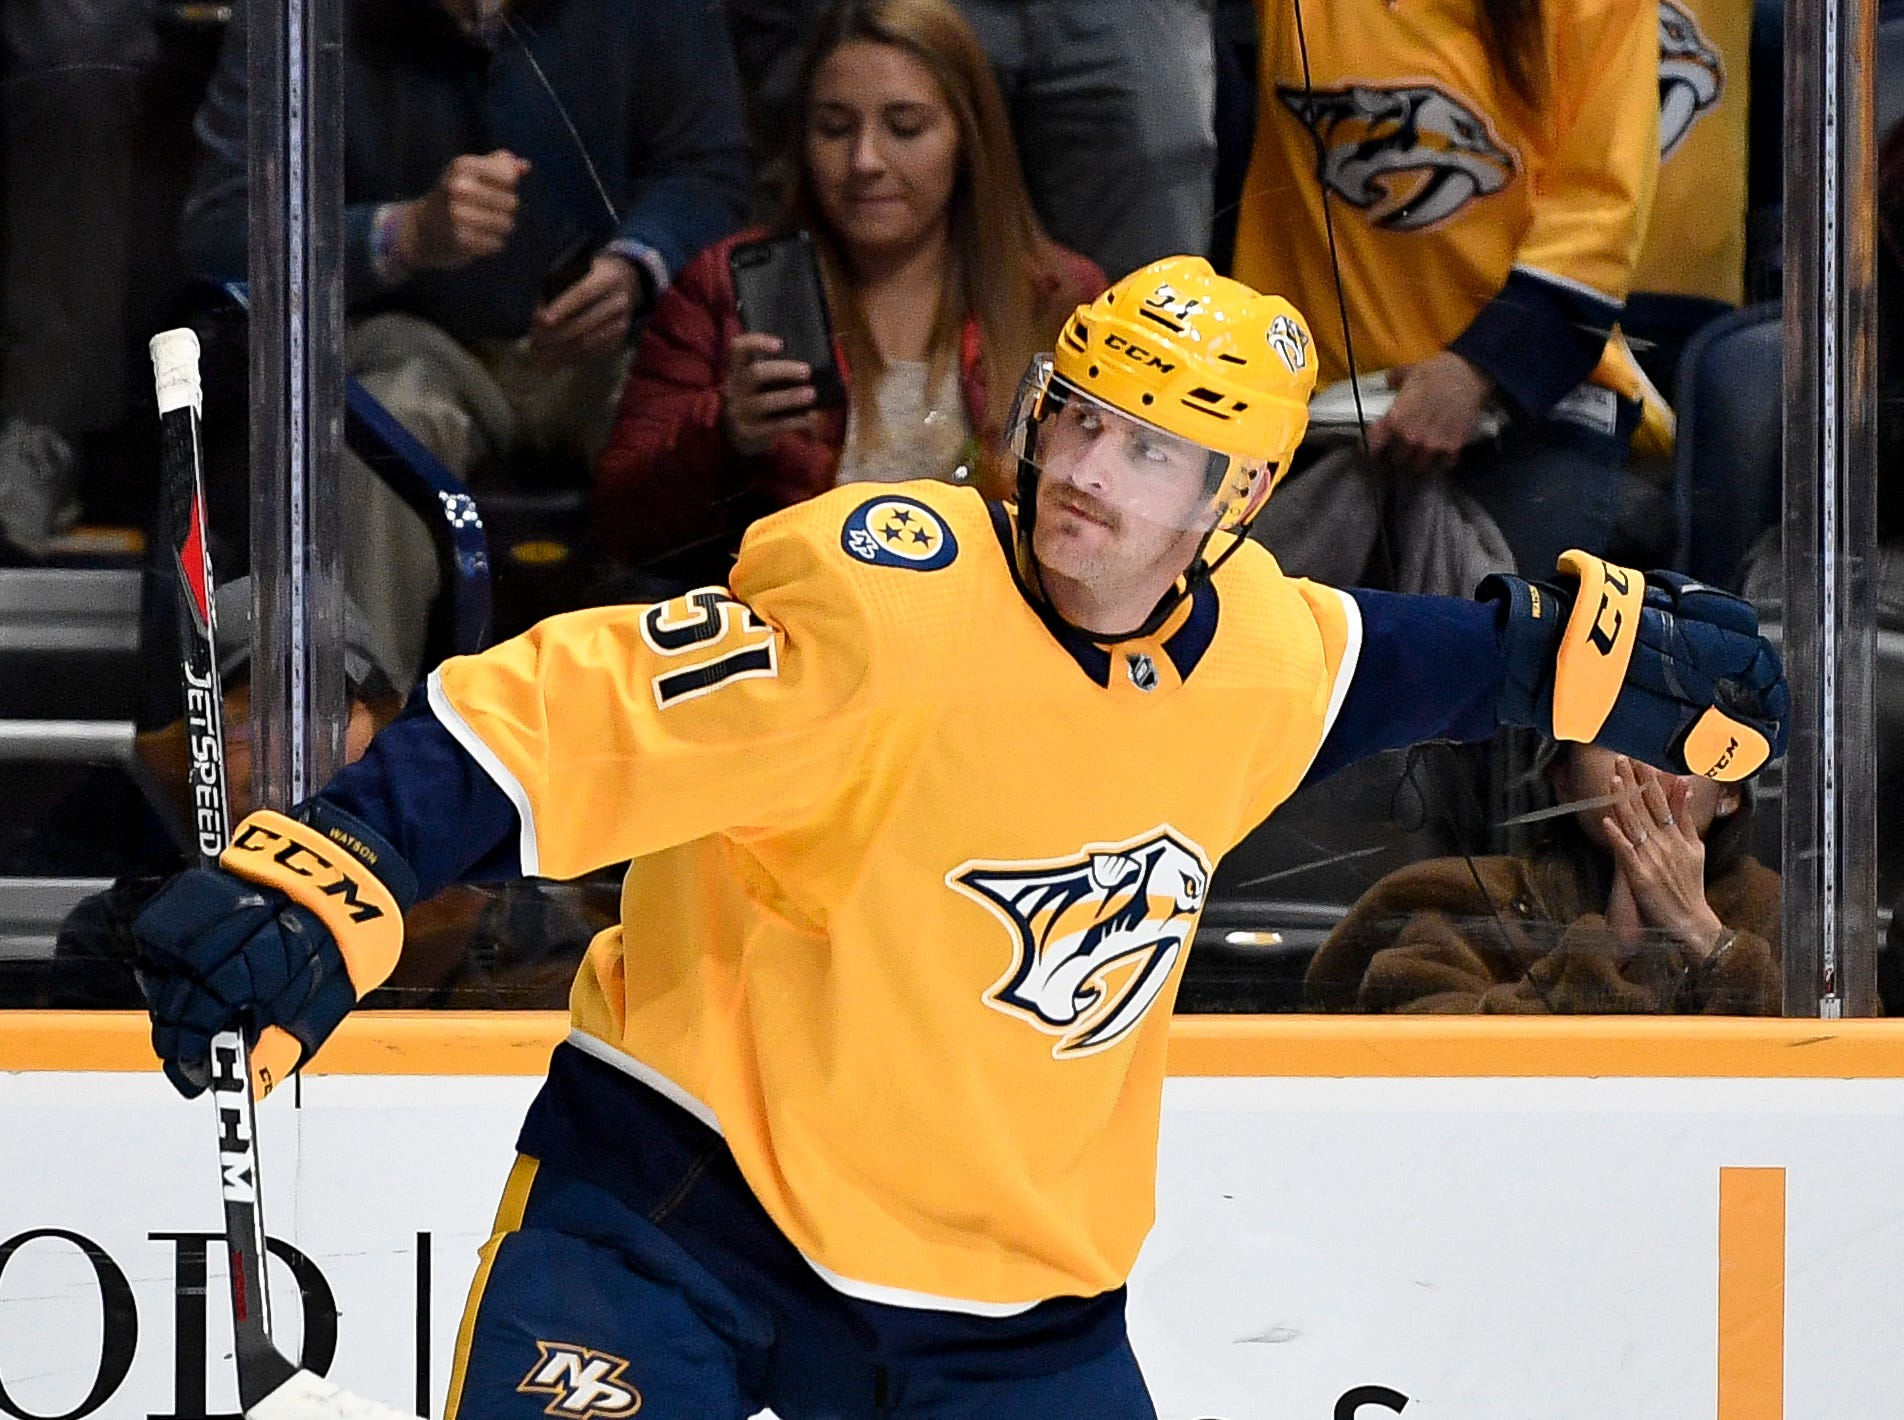 Nashville Predators left wing Austin Watson (51) reacts to scoring against the St. Louis Blues during the third period at Bridgestone Arena in Nashville, Tenn., Wednesday, Nov. 21, 2018.